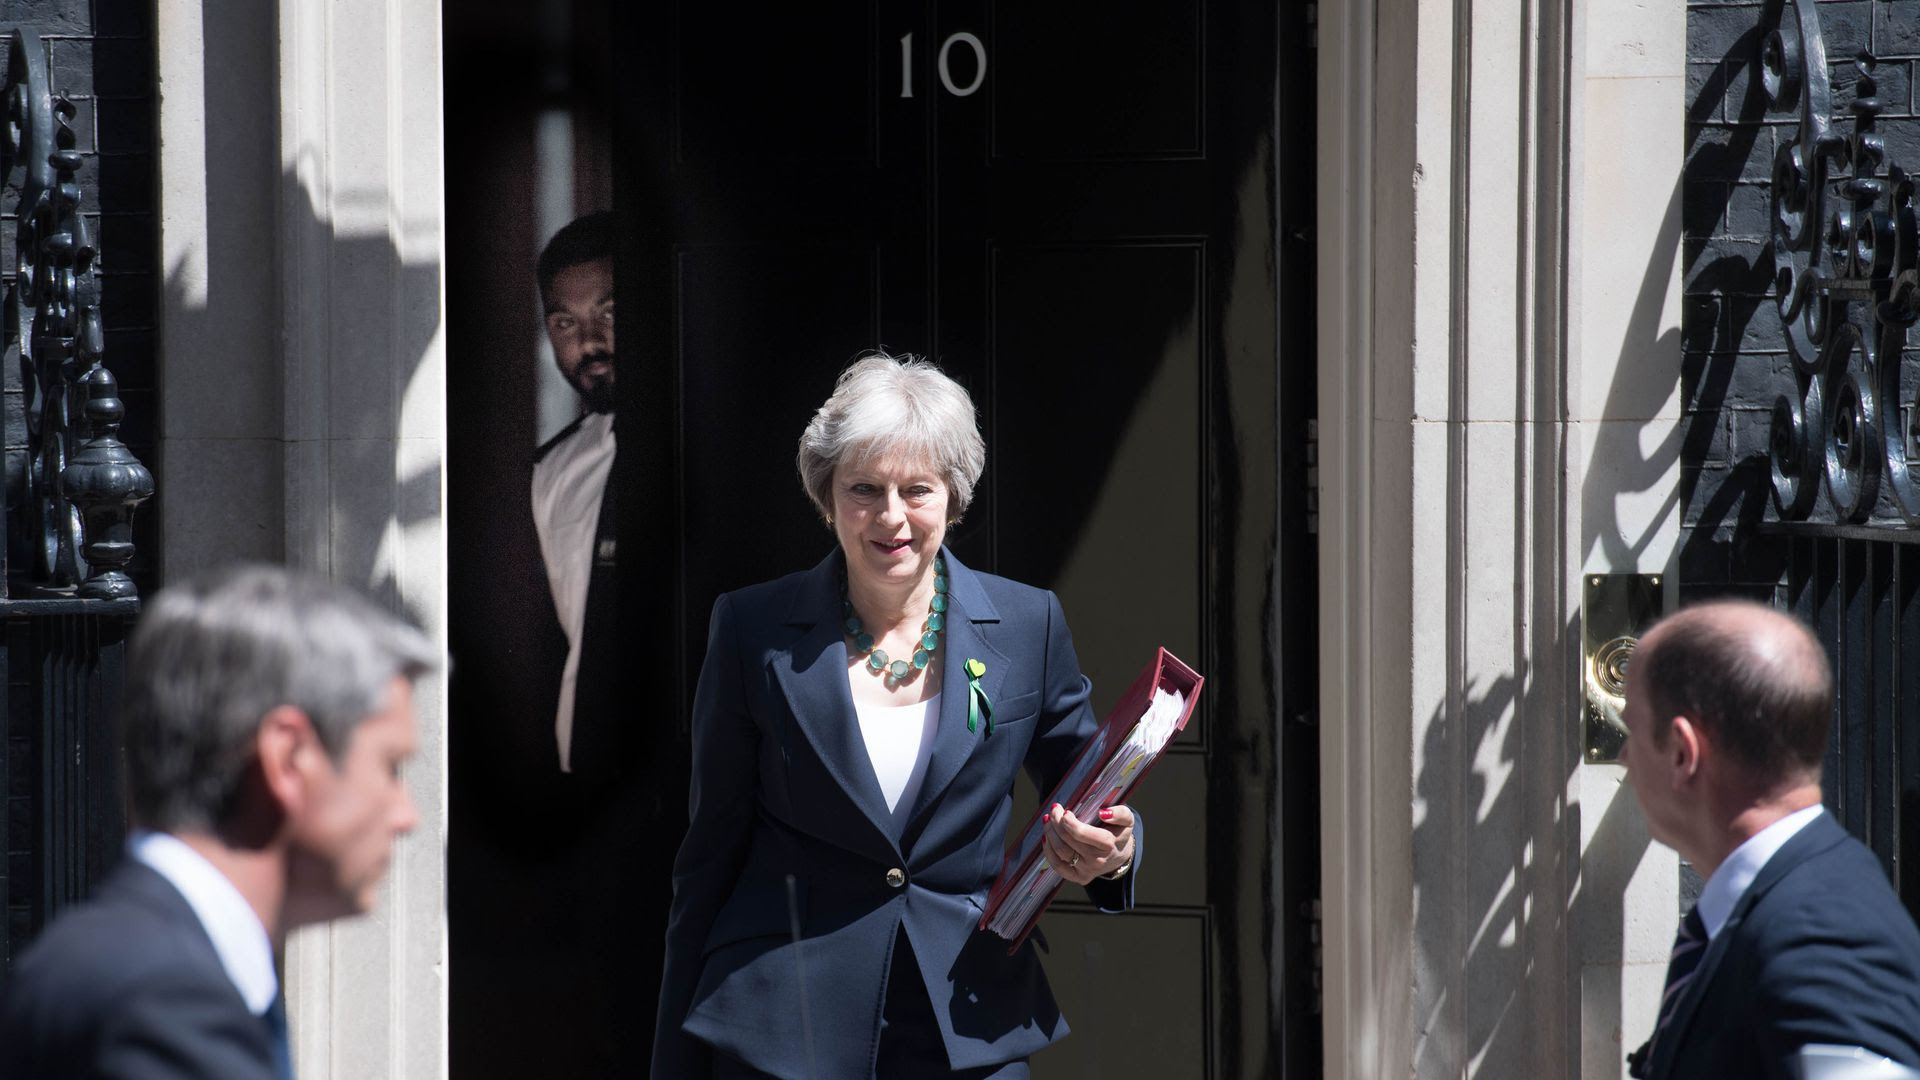 Theresa May walks down the stairs outside Number 10 in England